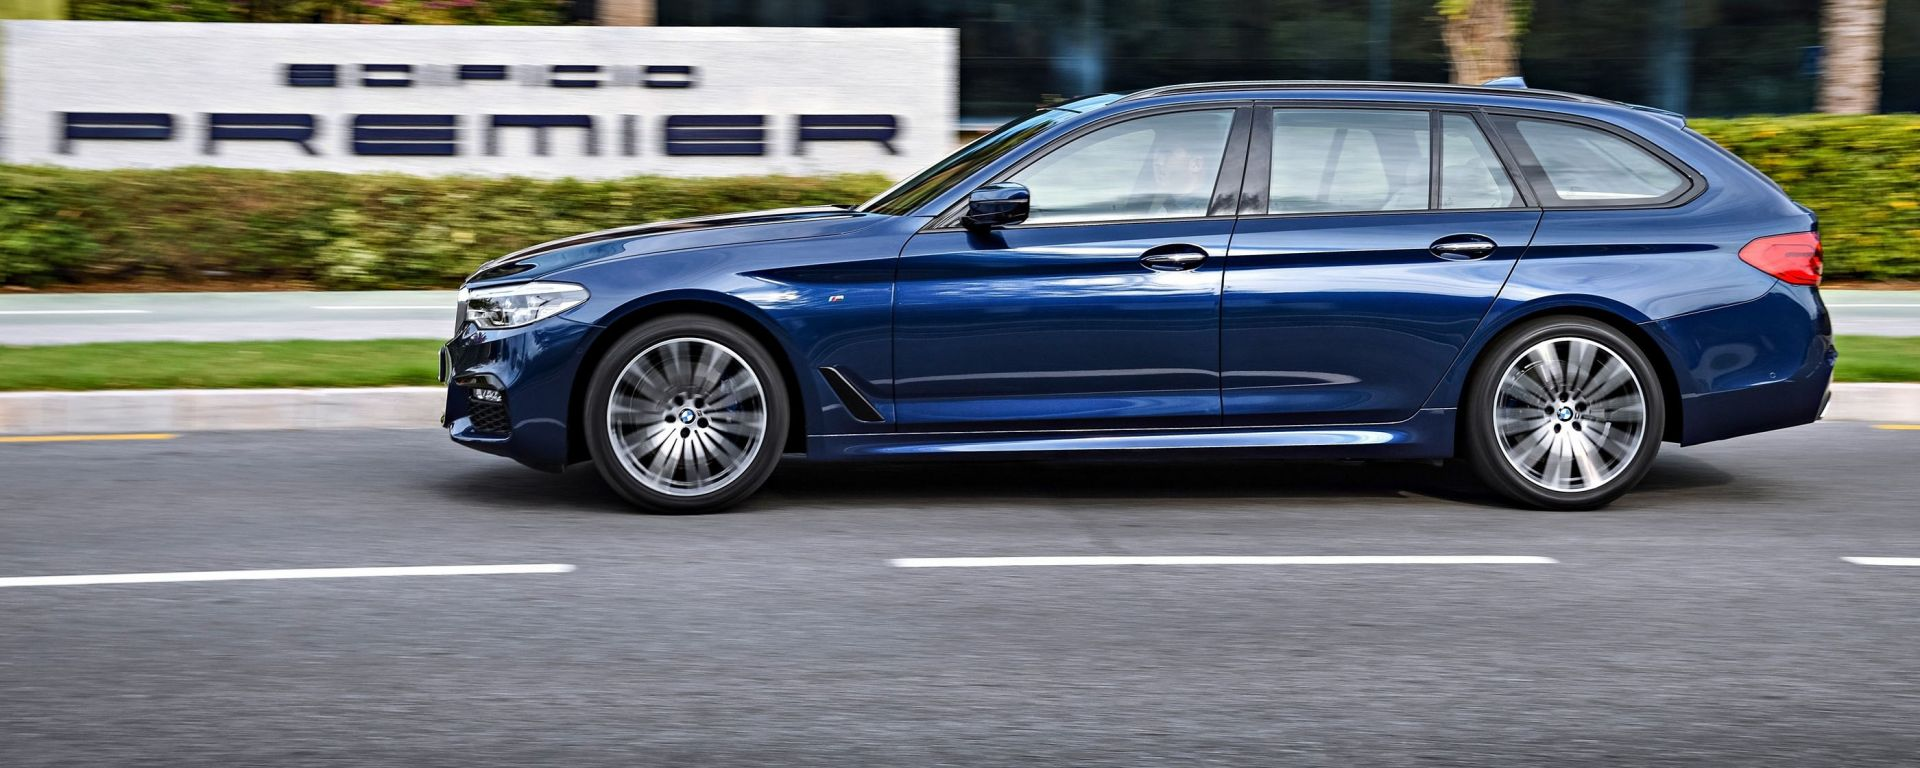 Nuova BMW Serie 5 Touring: vista laterale